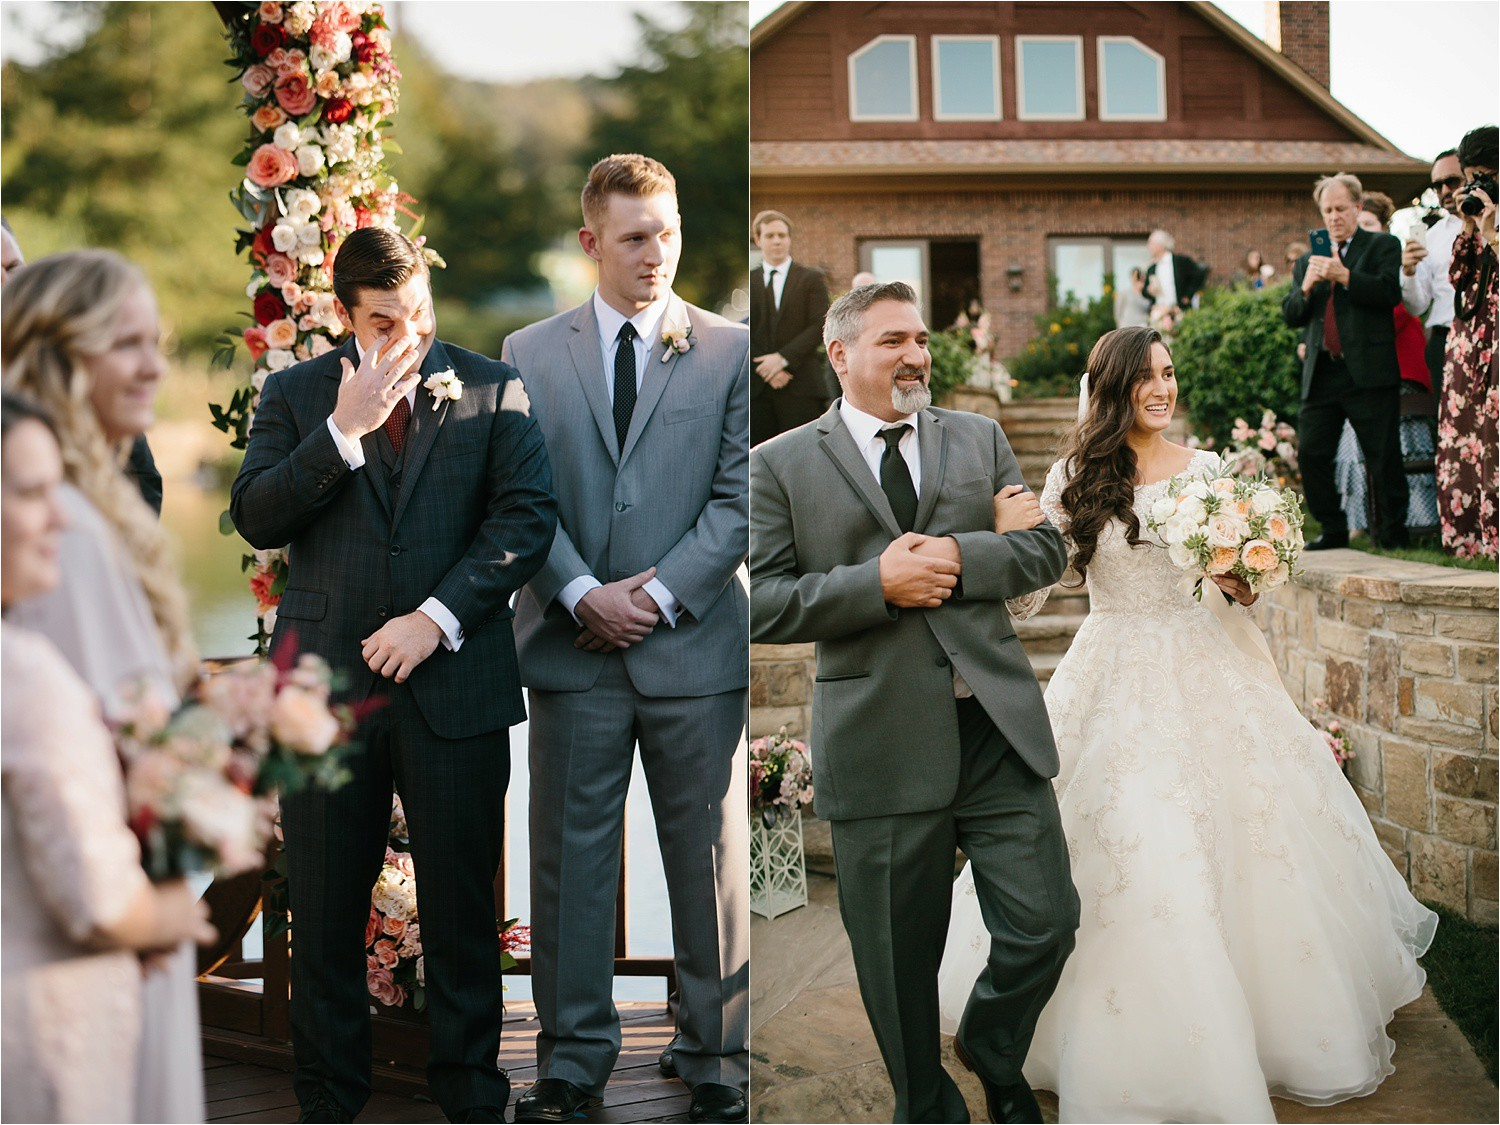 an-elegant-family-ranch-wedding-on-lake-worth-with-burgundy-apricot-and-blush-inspired-decorations-by-north-texas-wedding-photographer-rachel-meagan-photography-_-26